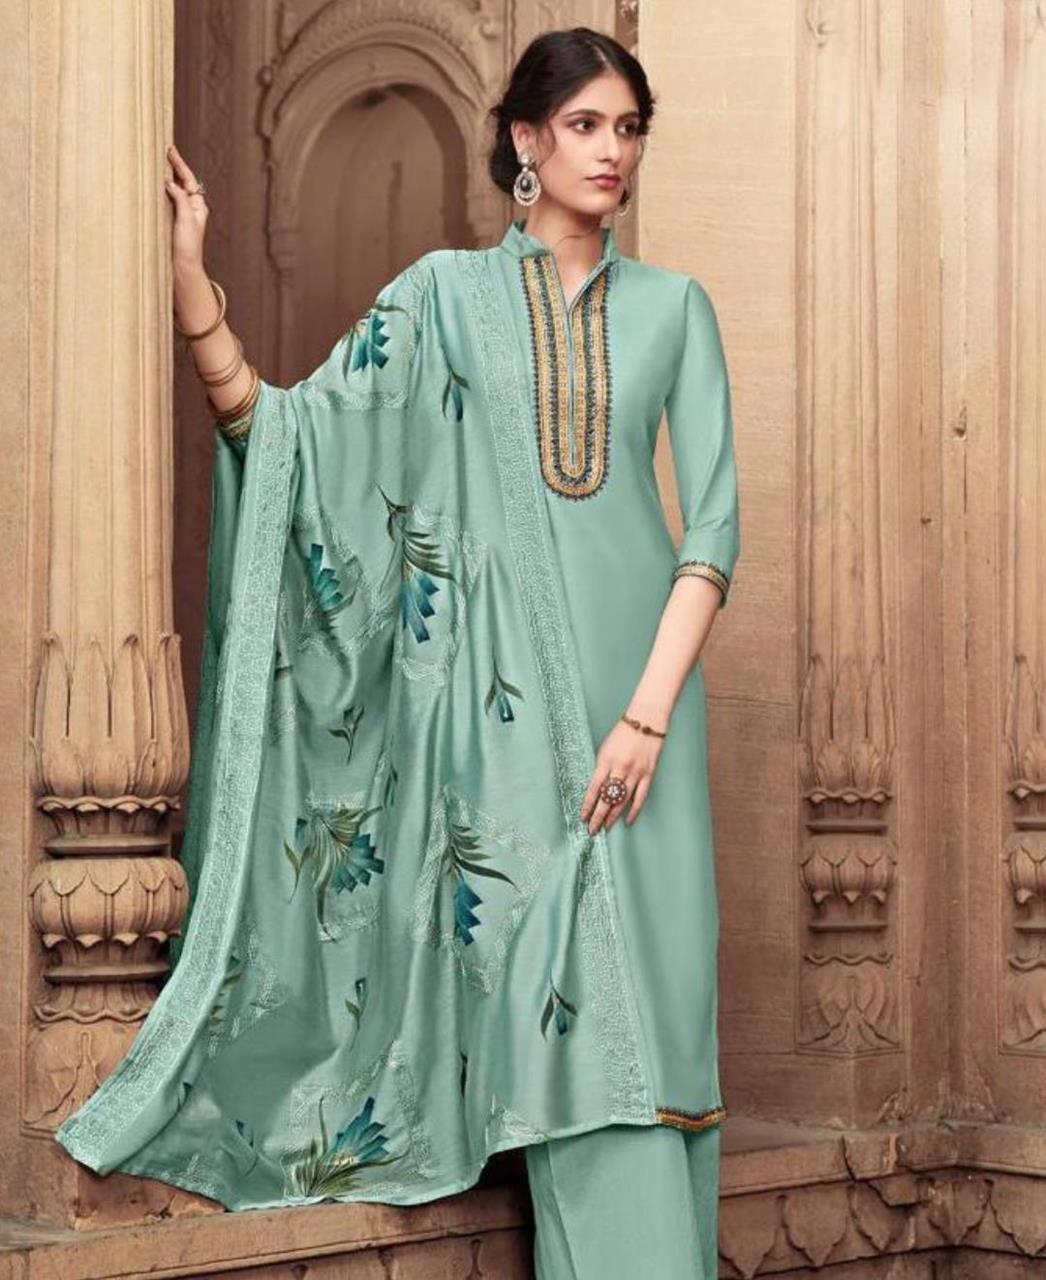 Embroidered Cotton Straight cut Salwar Kameez in Aqua